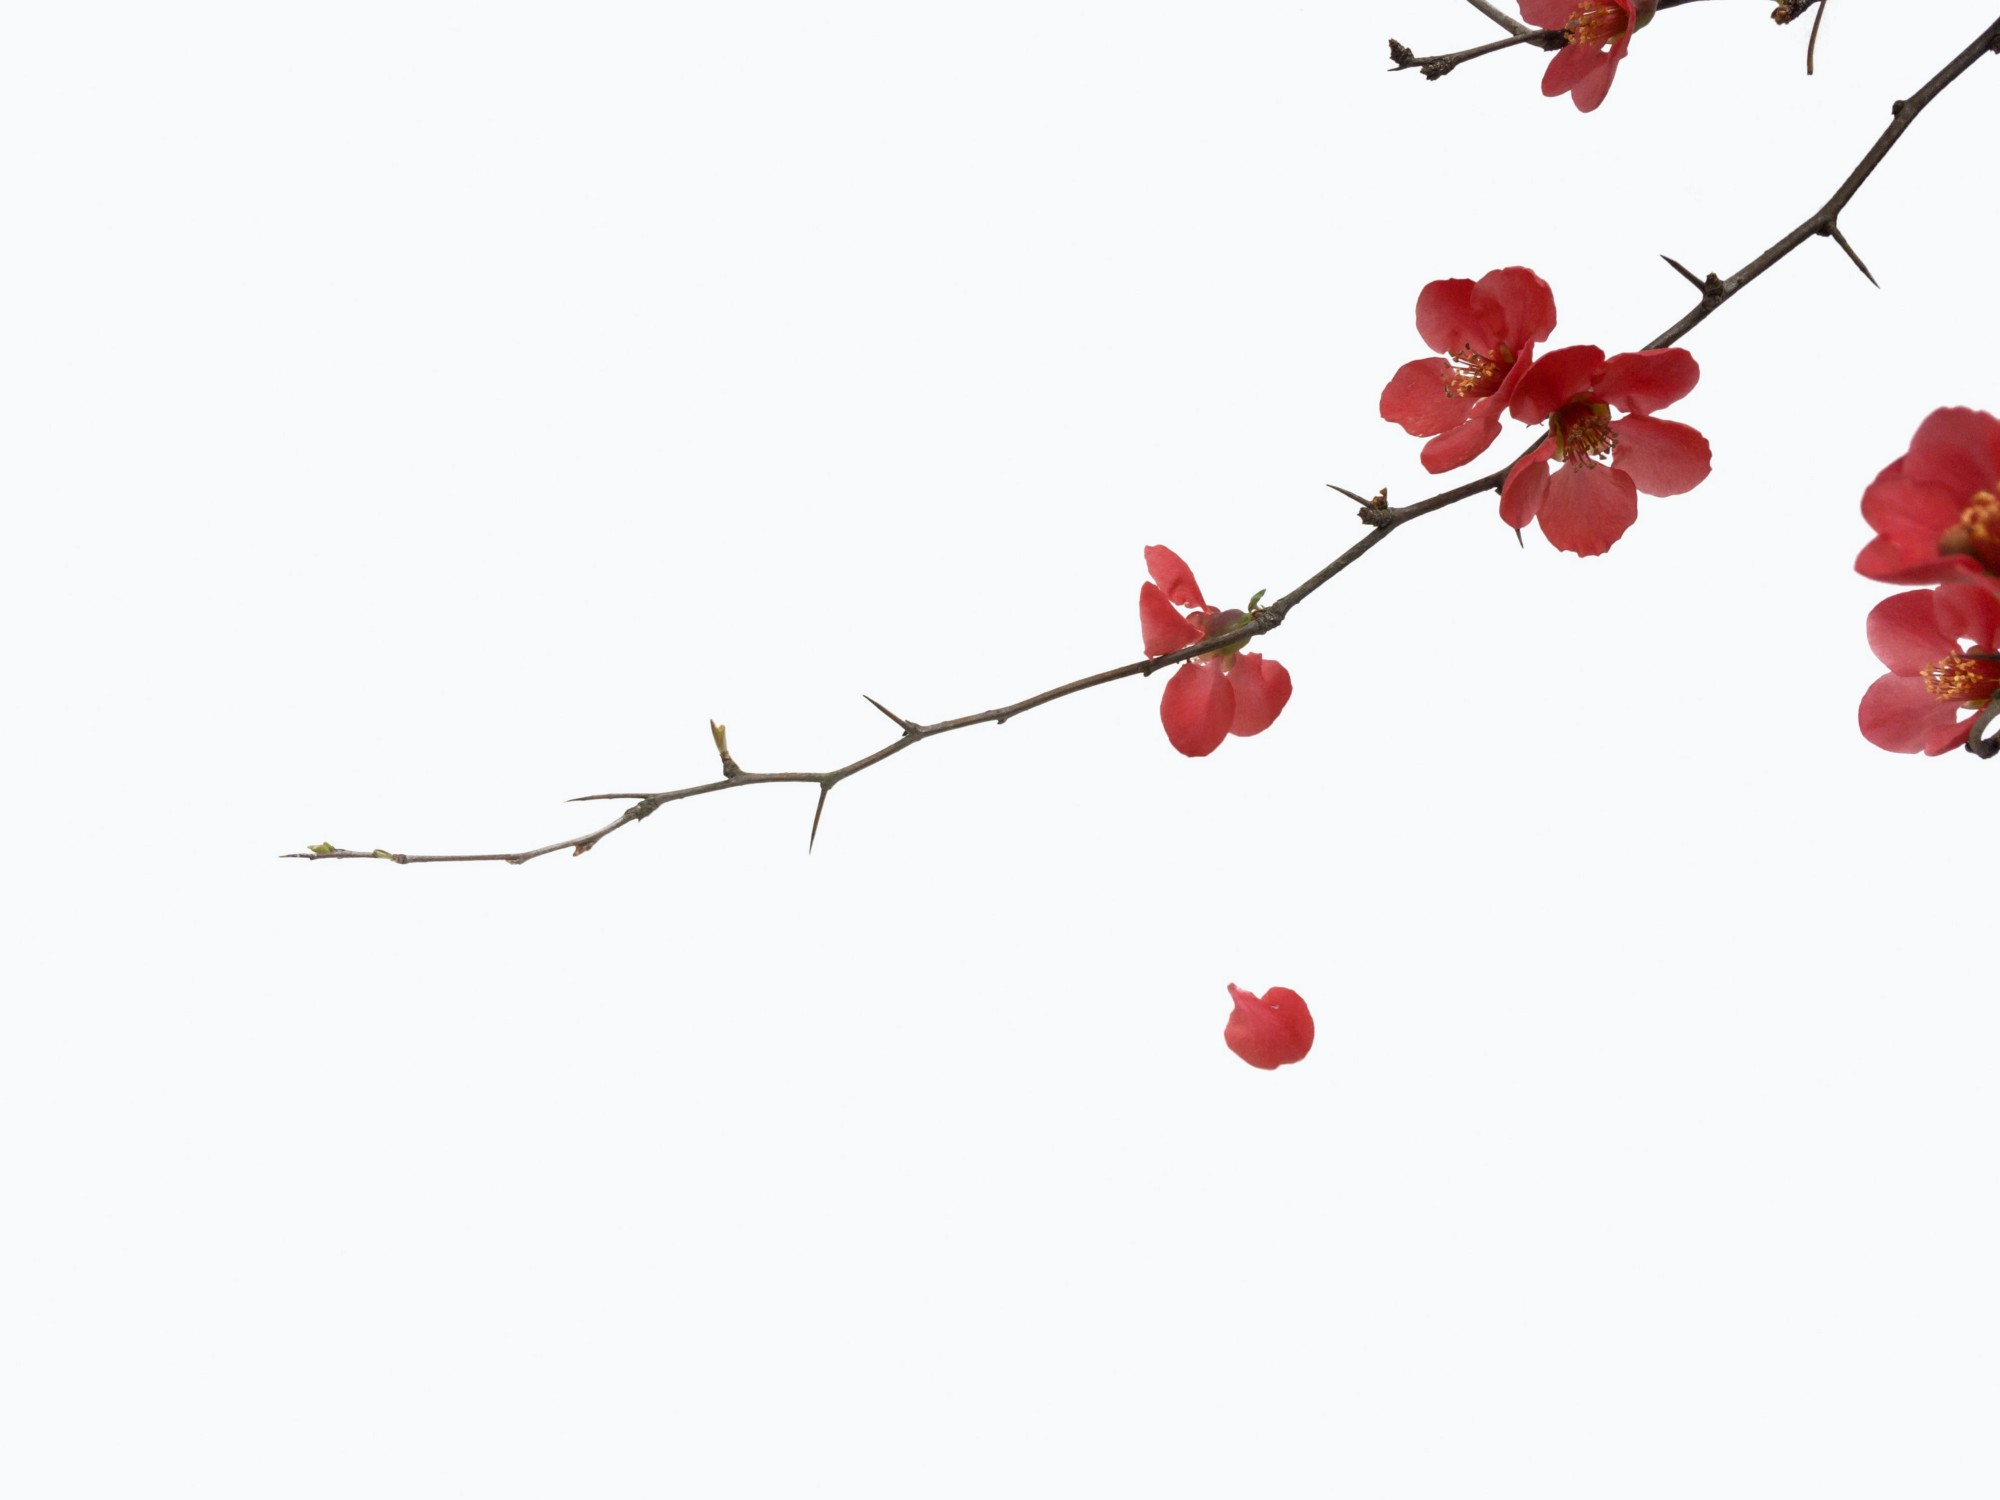 Nearly-bare branch of red blossoms against stark, white background.